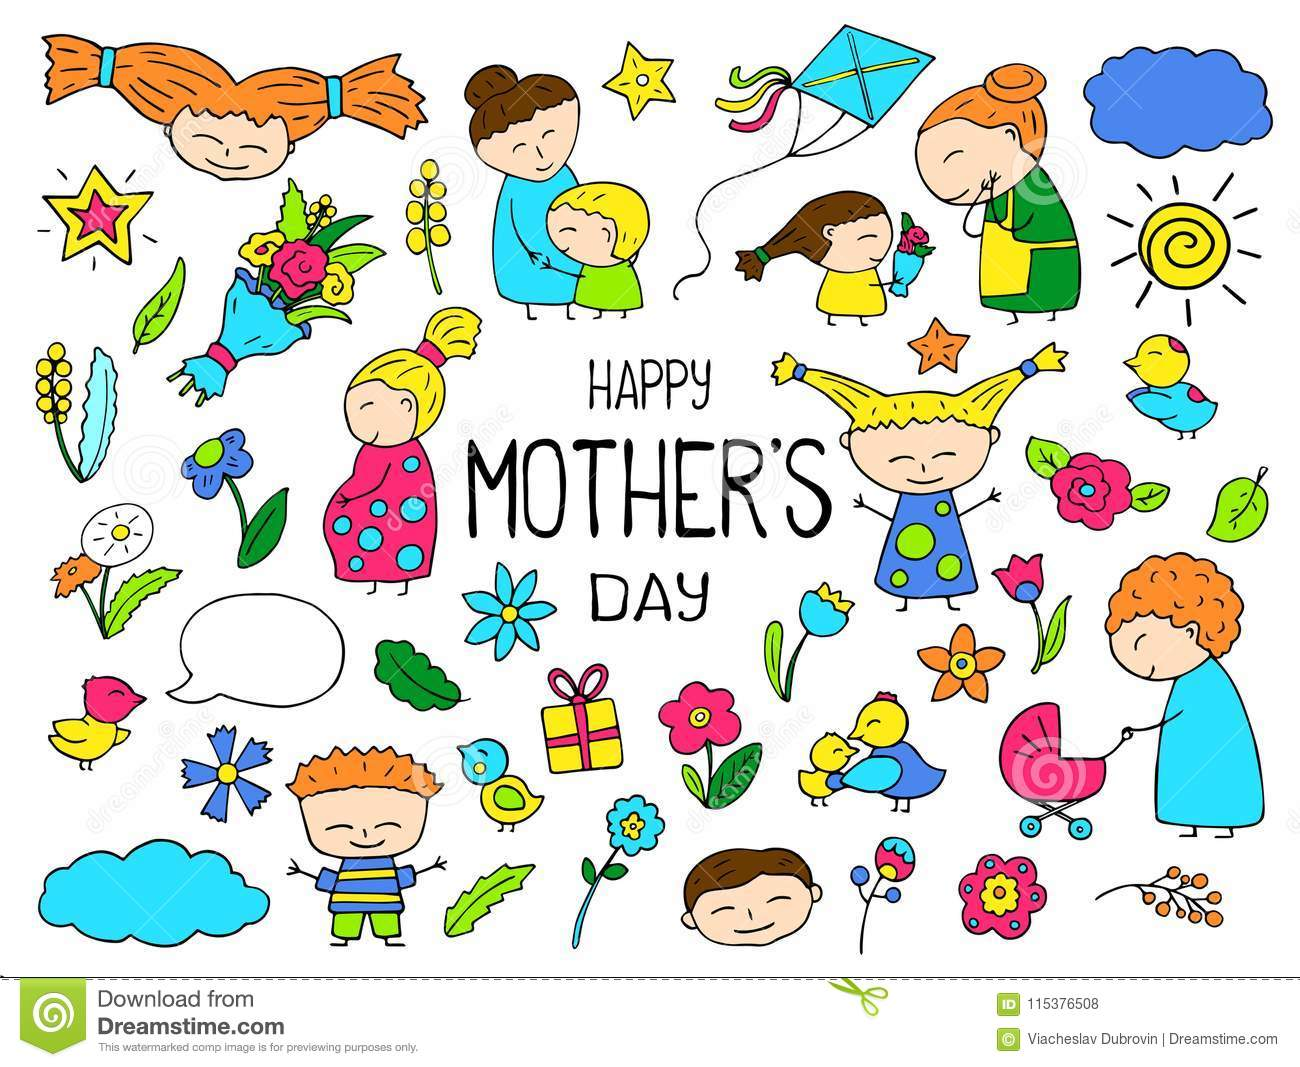 25+ Senior Mother's Day Clipart